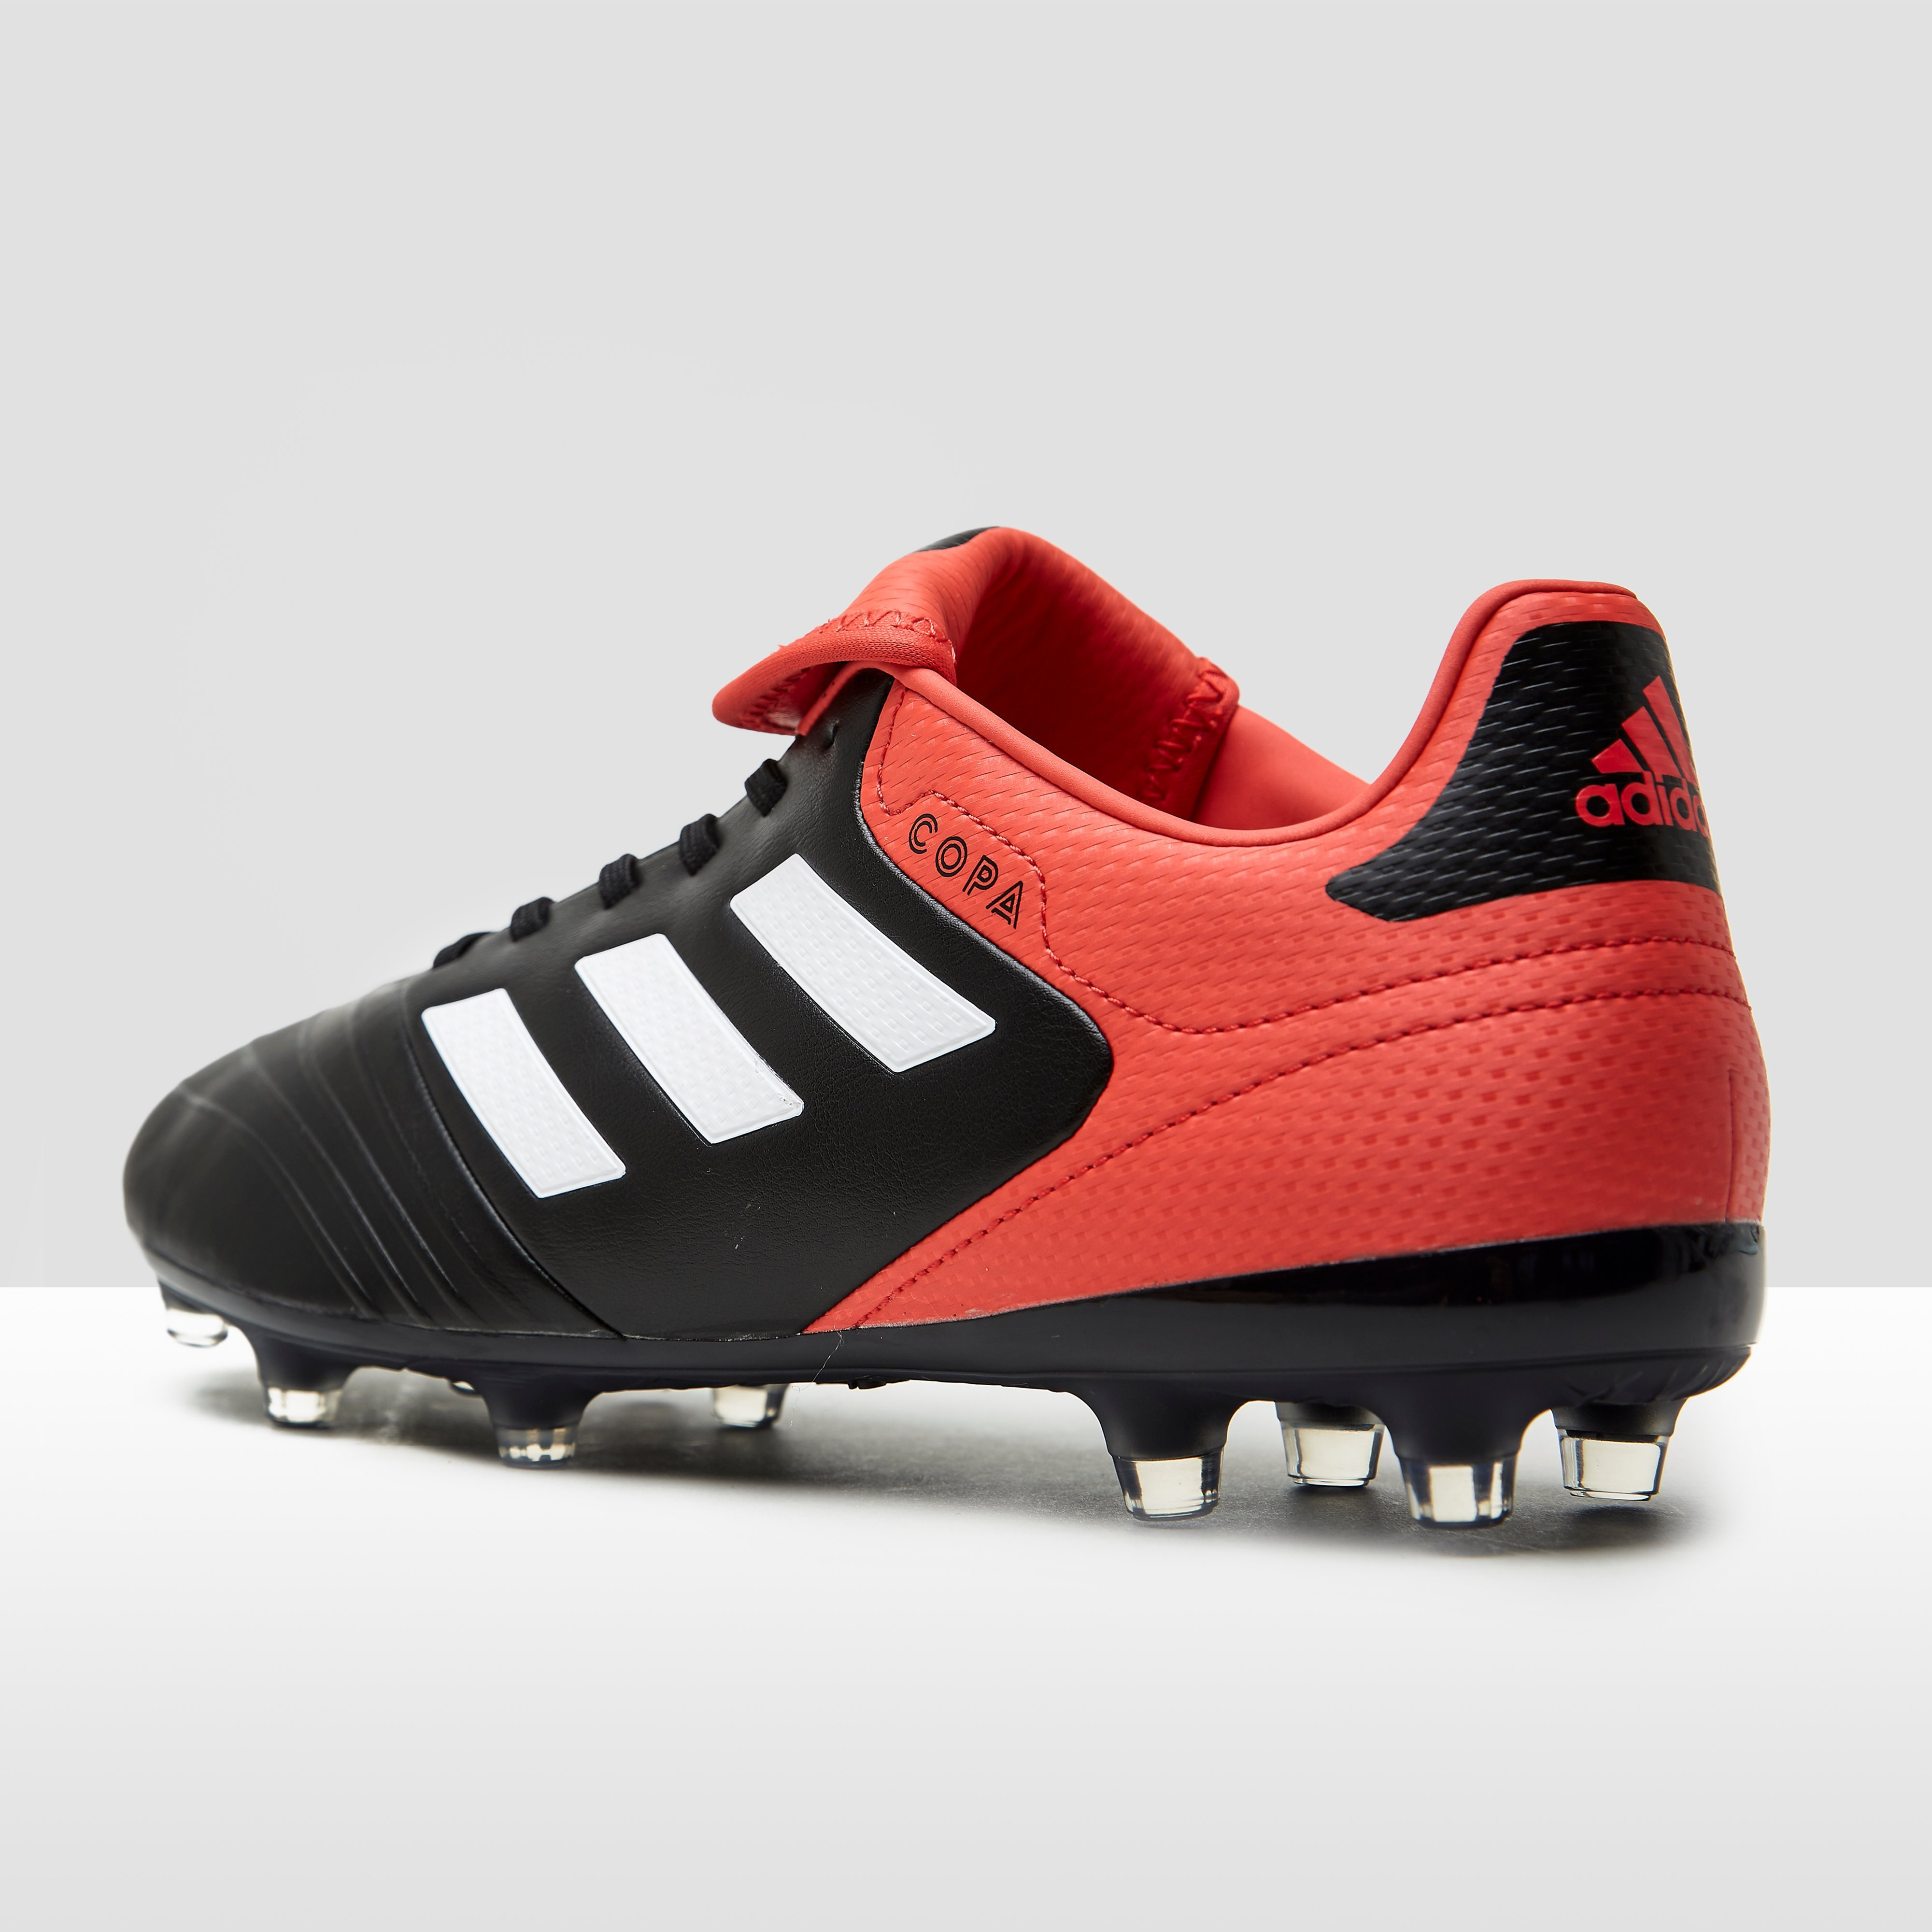 Adidas Copa 18,3 Fg Football Boots Black / Red Menn